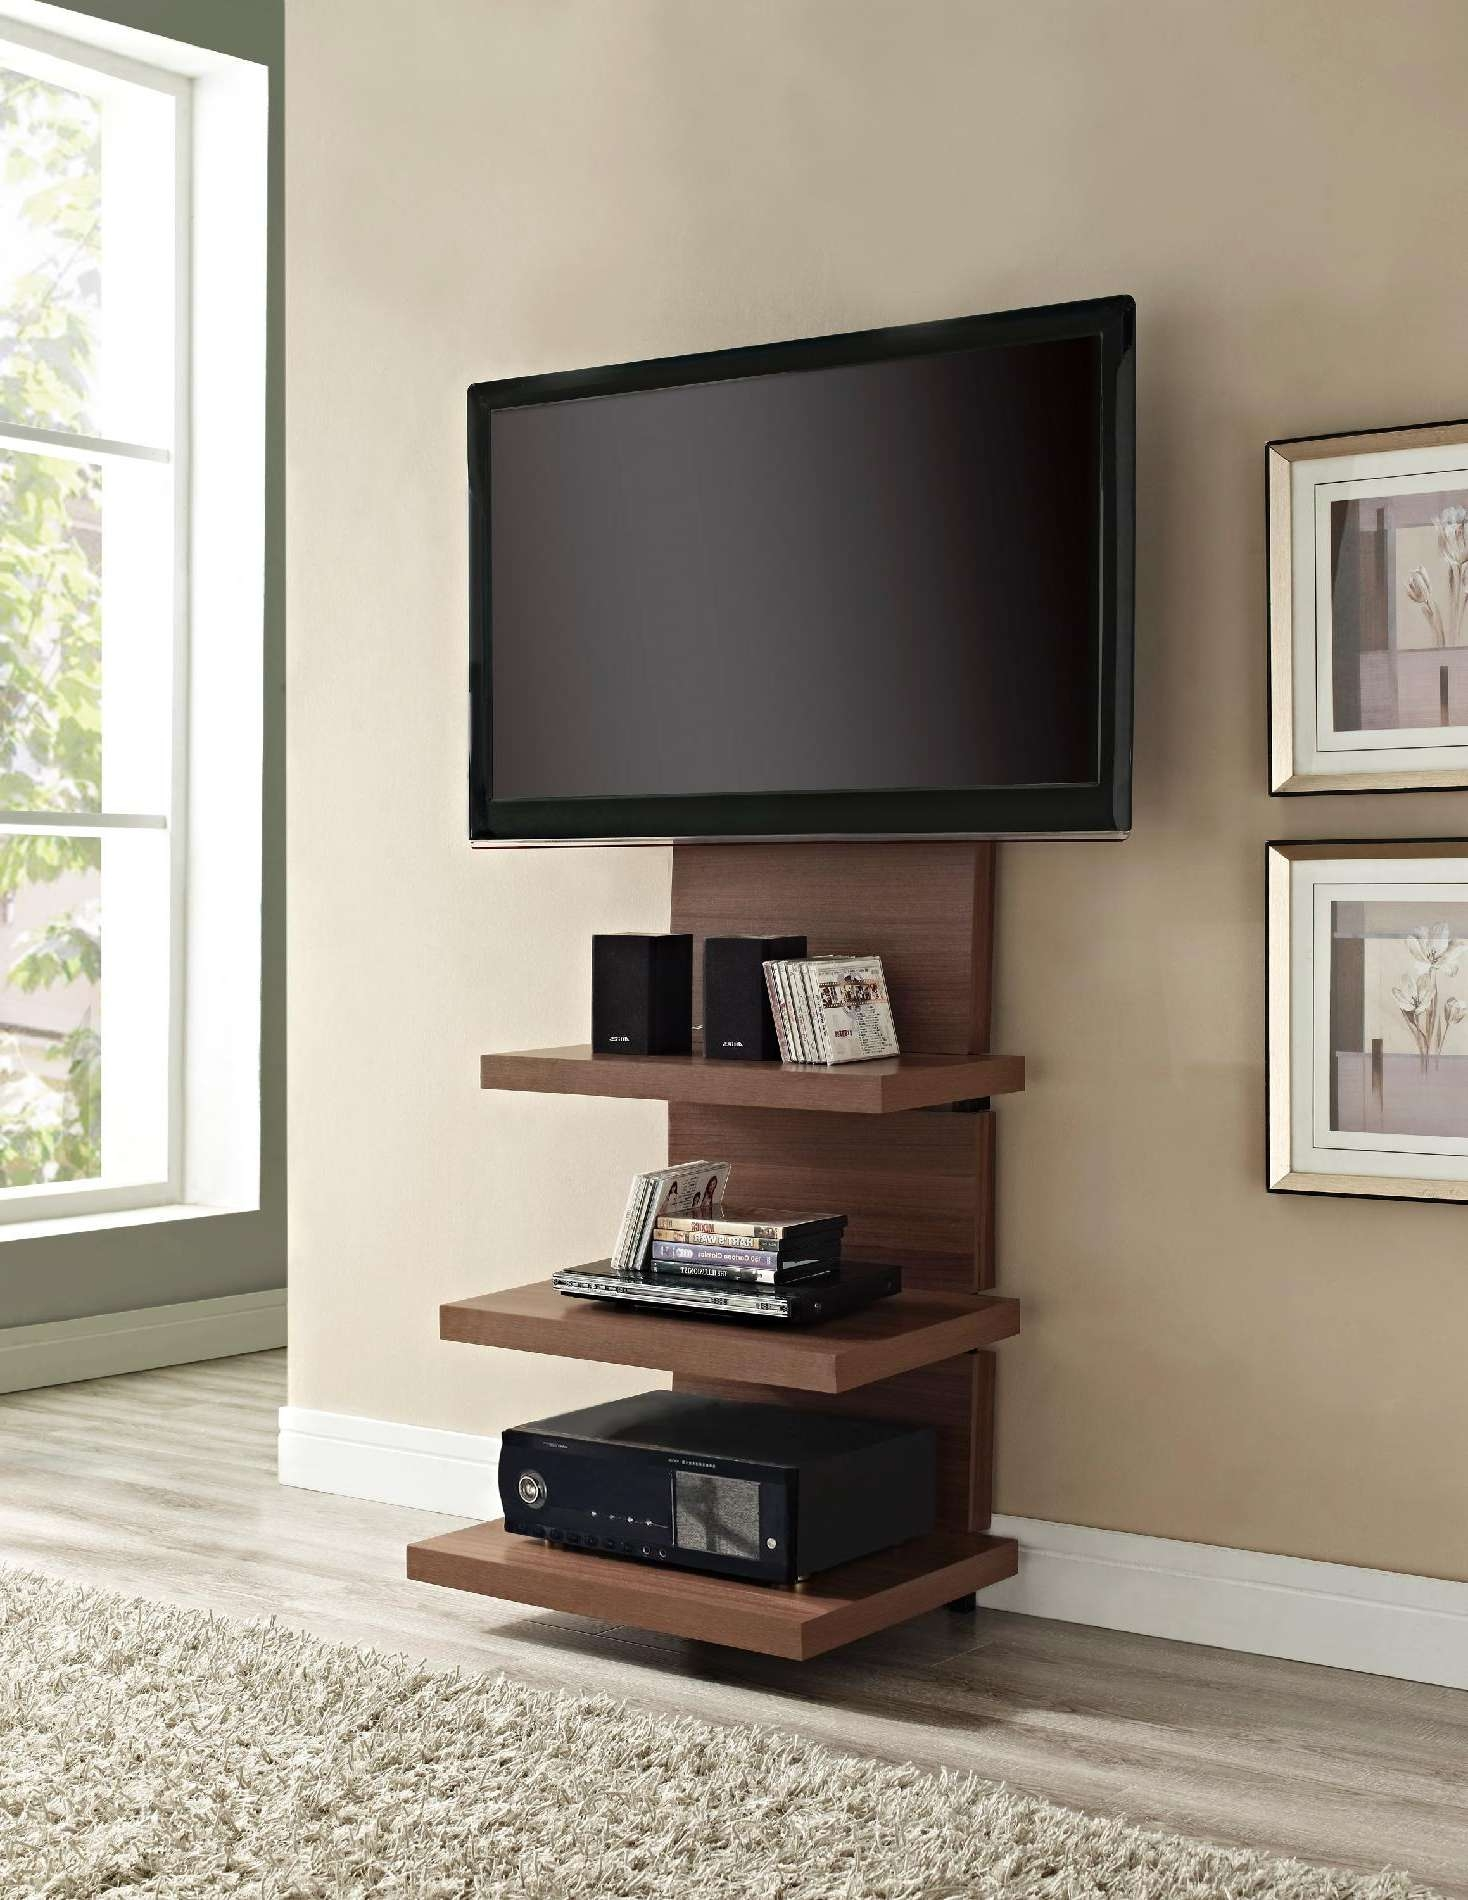 Chic And Modern Tv Wall Mount Ideas For Living Room Stands With For Modern Tv Stands With Mount (View 2 of 15)